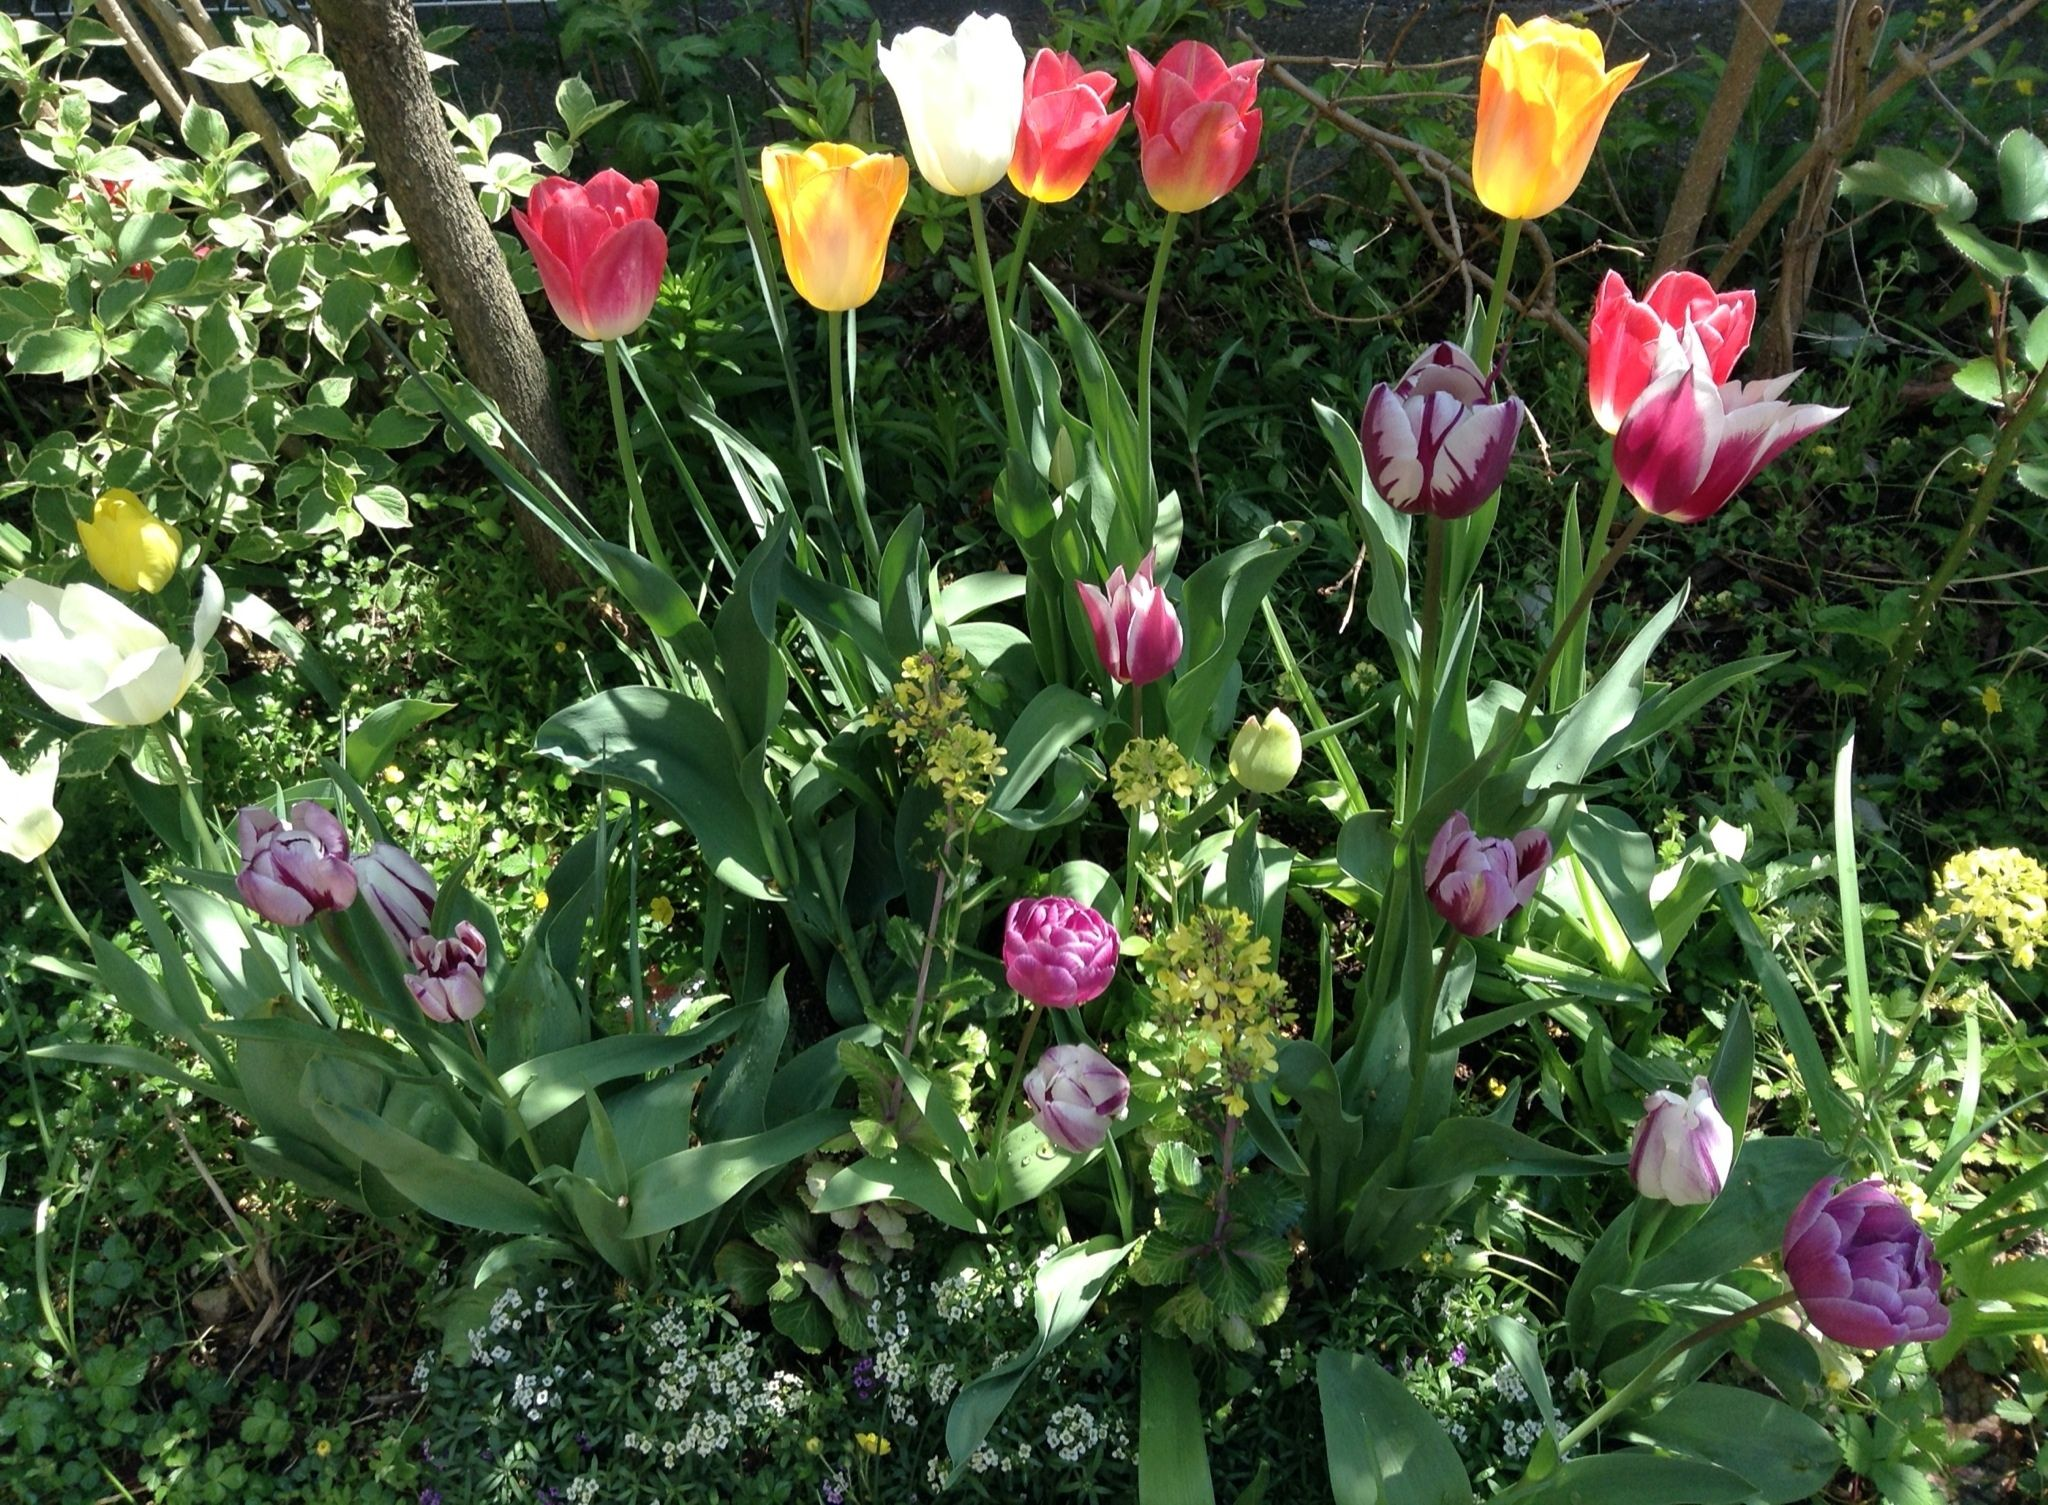 towering tulips among the grasses